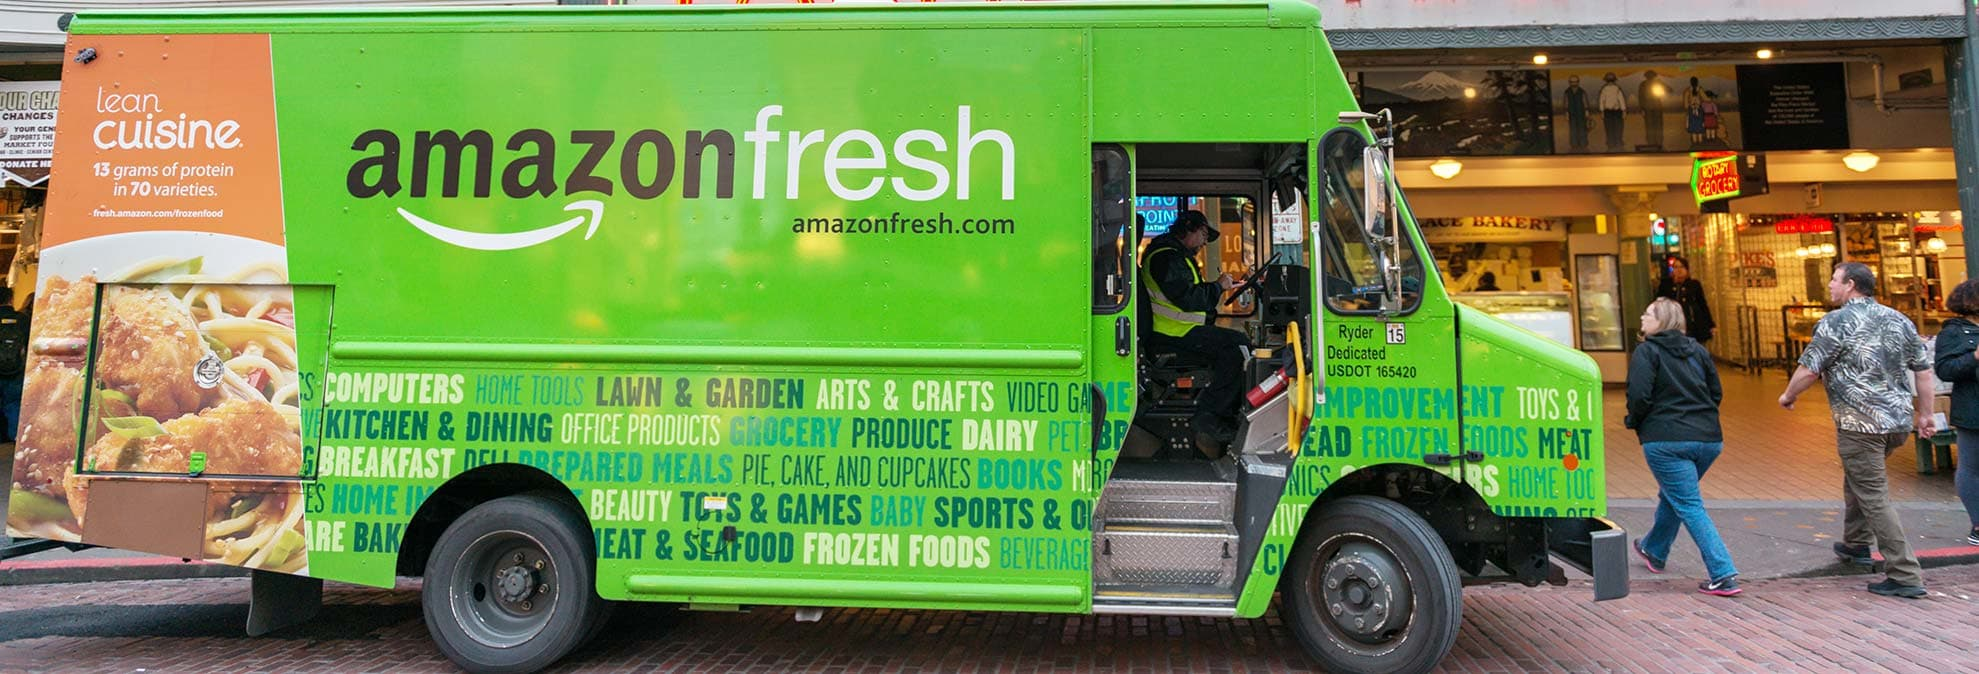 Amazon Has Changed The Way You Shop For Food Consumer